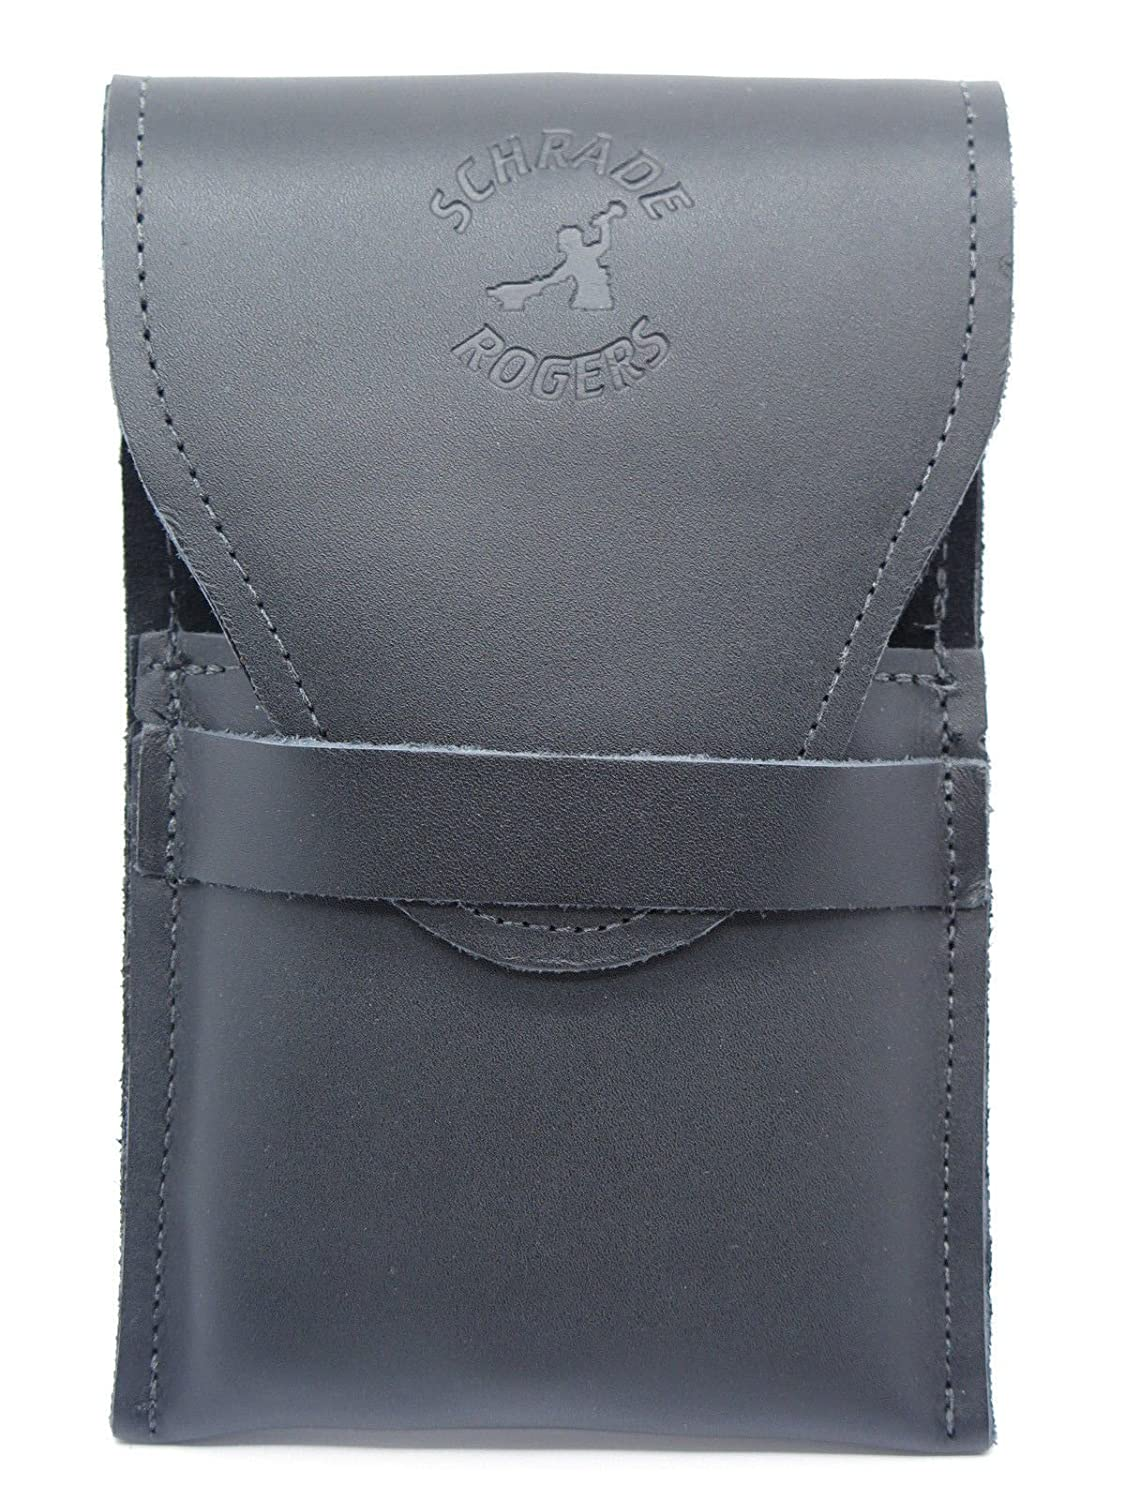 Schrade Rogers Leather Straight Razor Case Pouch Sheath Holster Protector